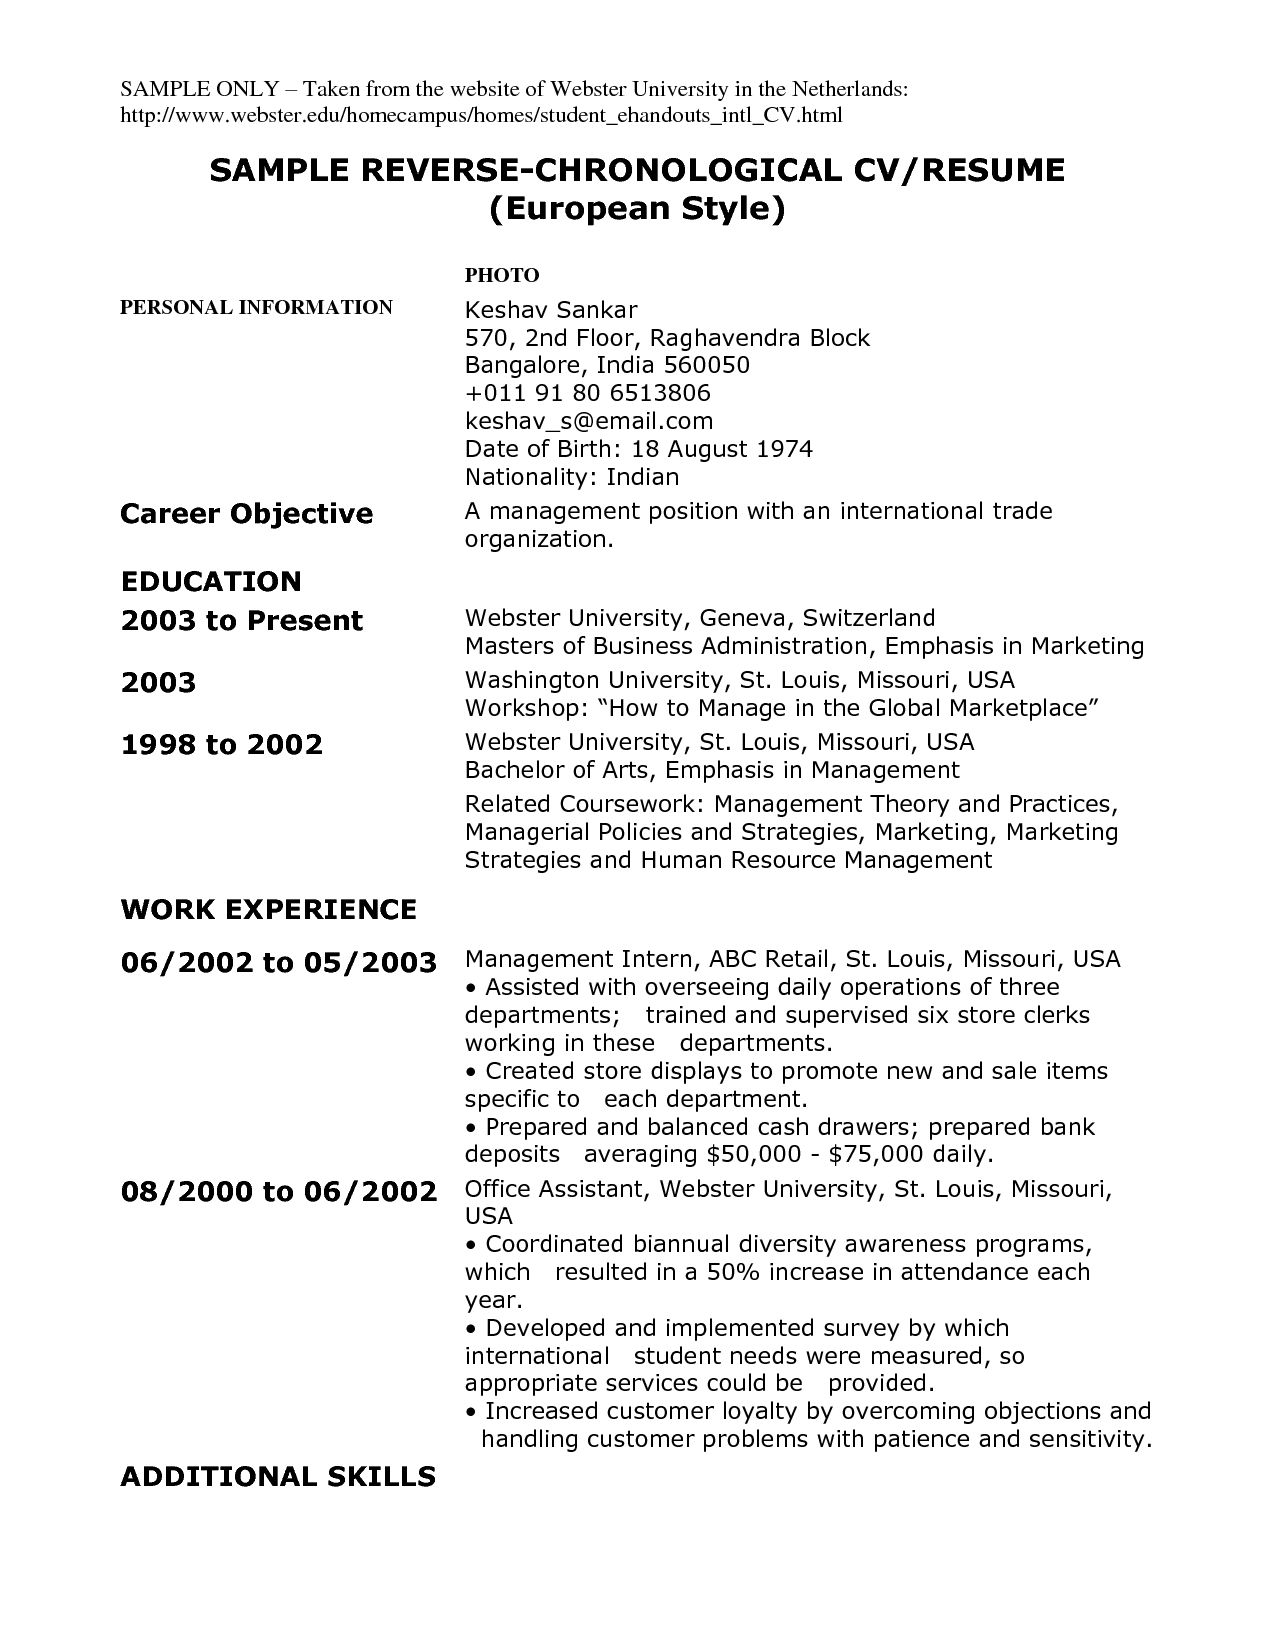 Resume Example Reverse Chronological Resume Ixiplay Free Resume